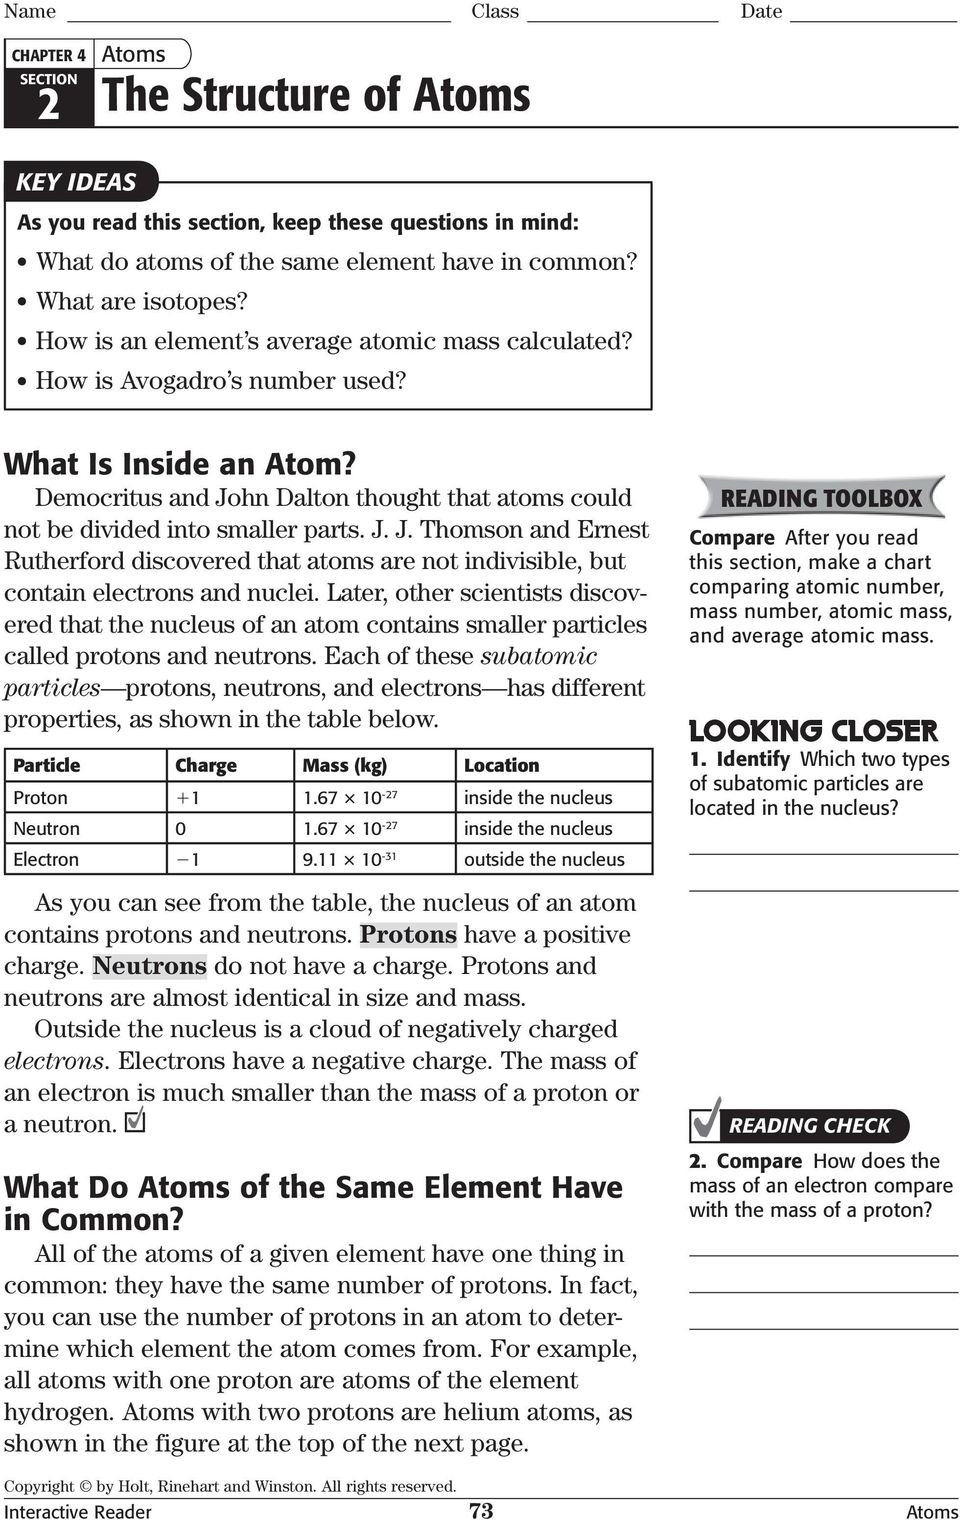 Structure Of the atom Worksheet